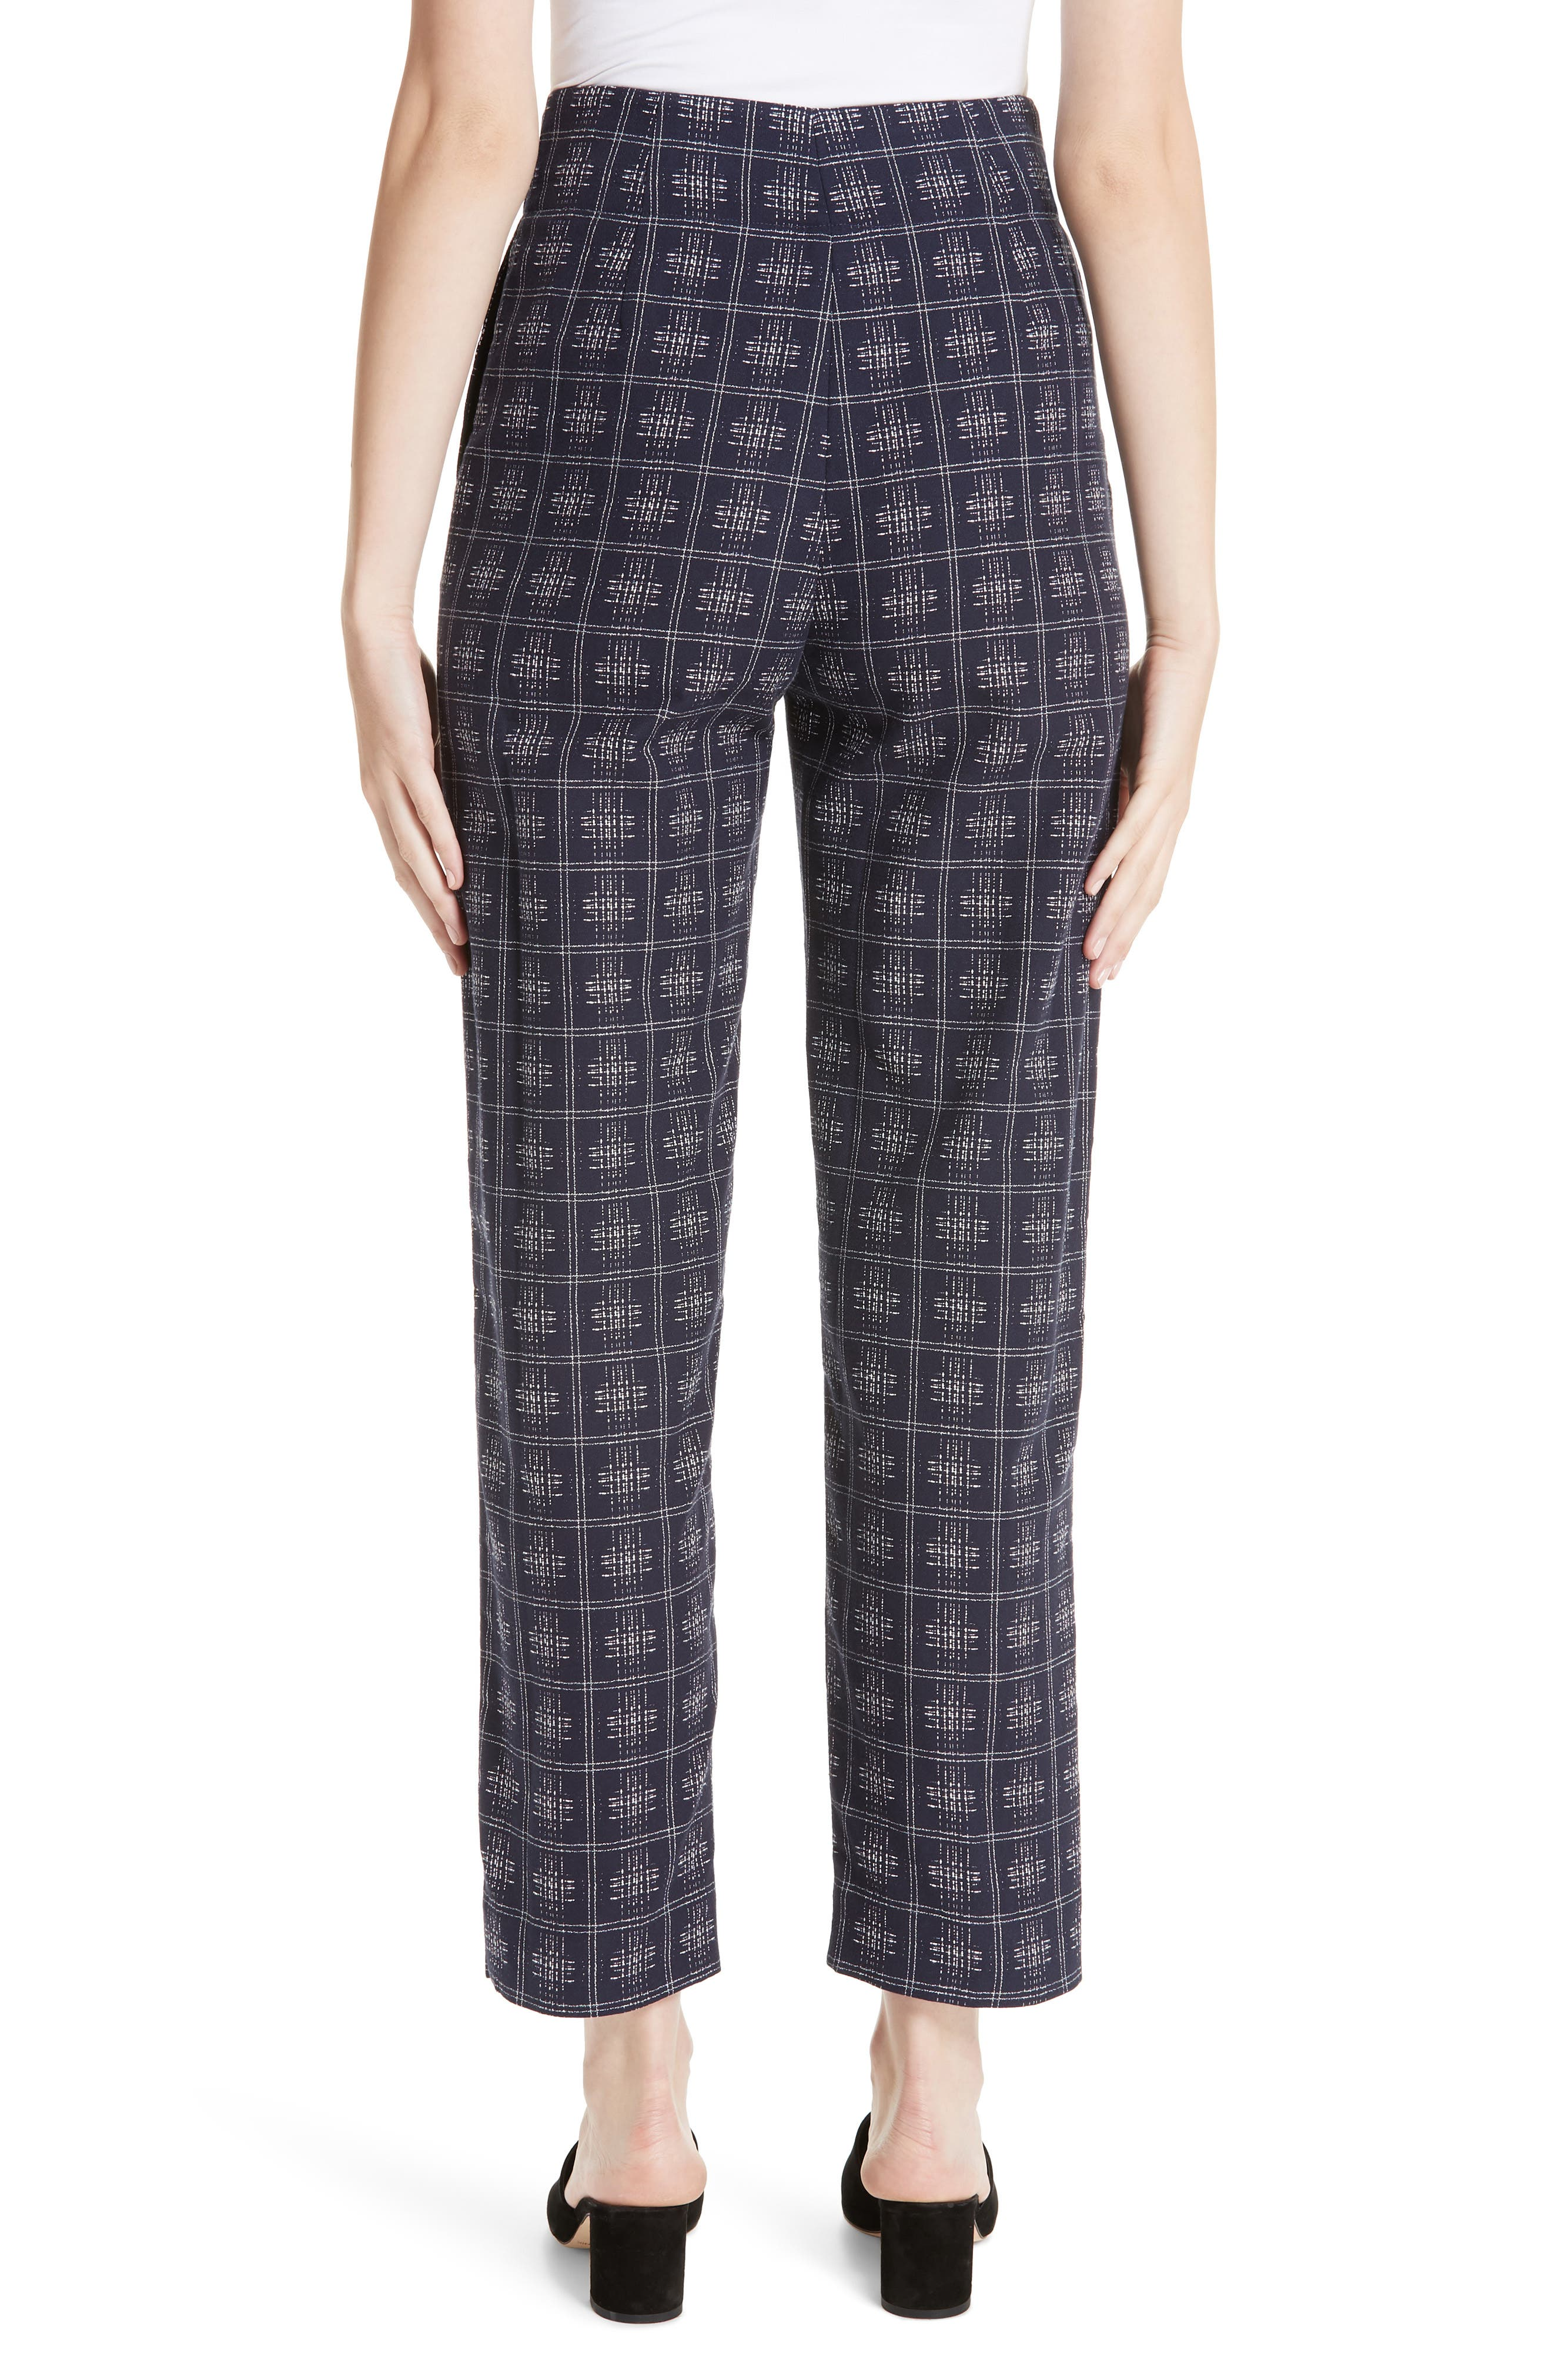 PALMER/HARDING, Fractured Trousers, Alternate thumbnail 2, color, NAVY CROSSHATCH CHECK